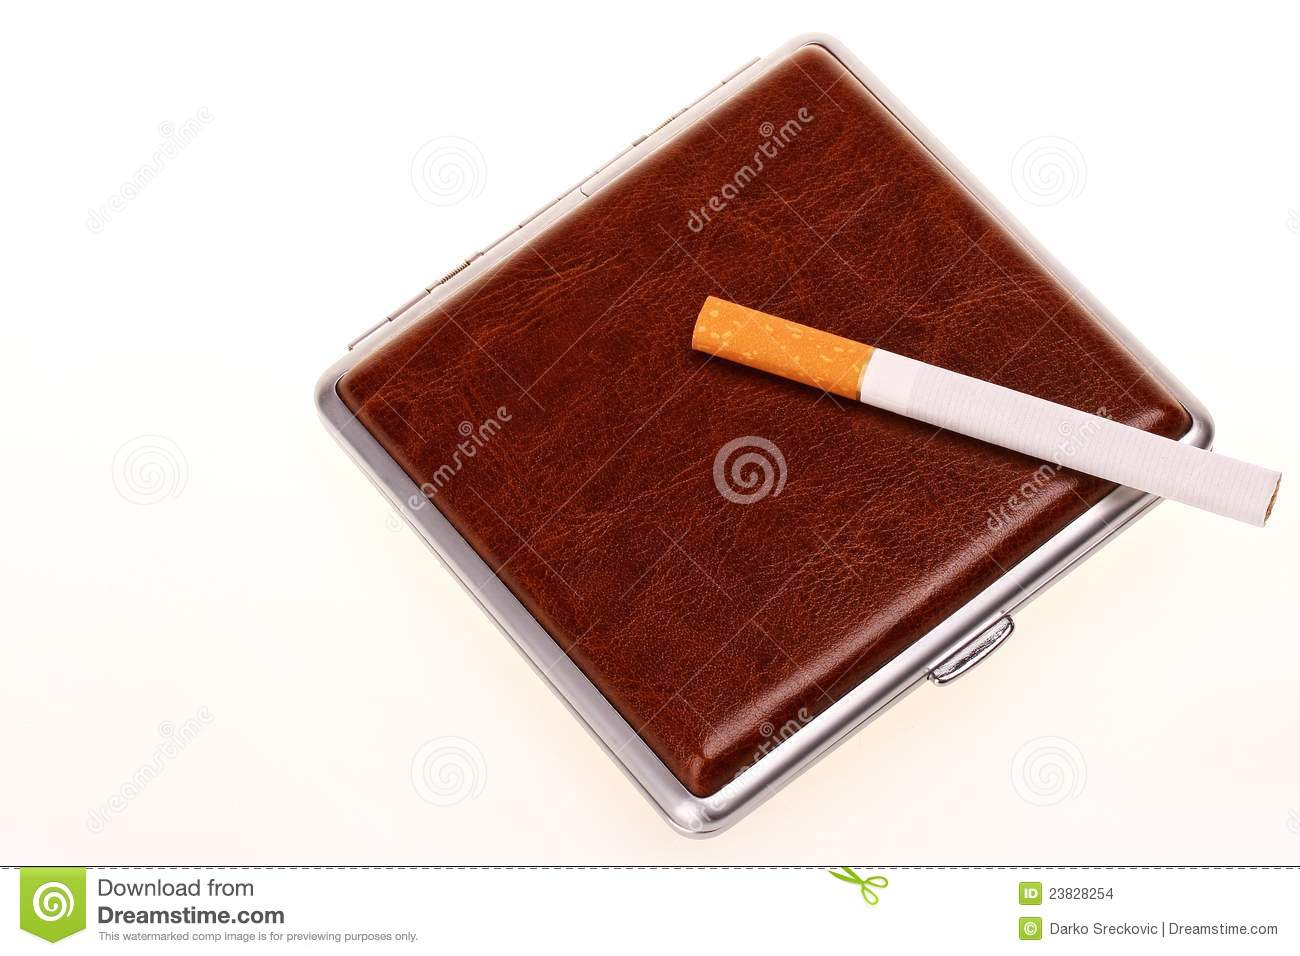 Royaume-Uni disponibilité expédition gratuite choisir officiel Porte-cigarettes de luxe photo stock. Image du disease ...